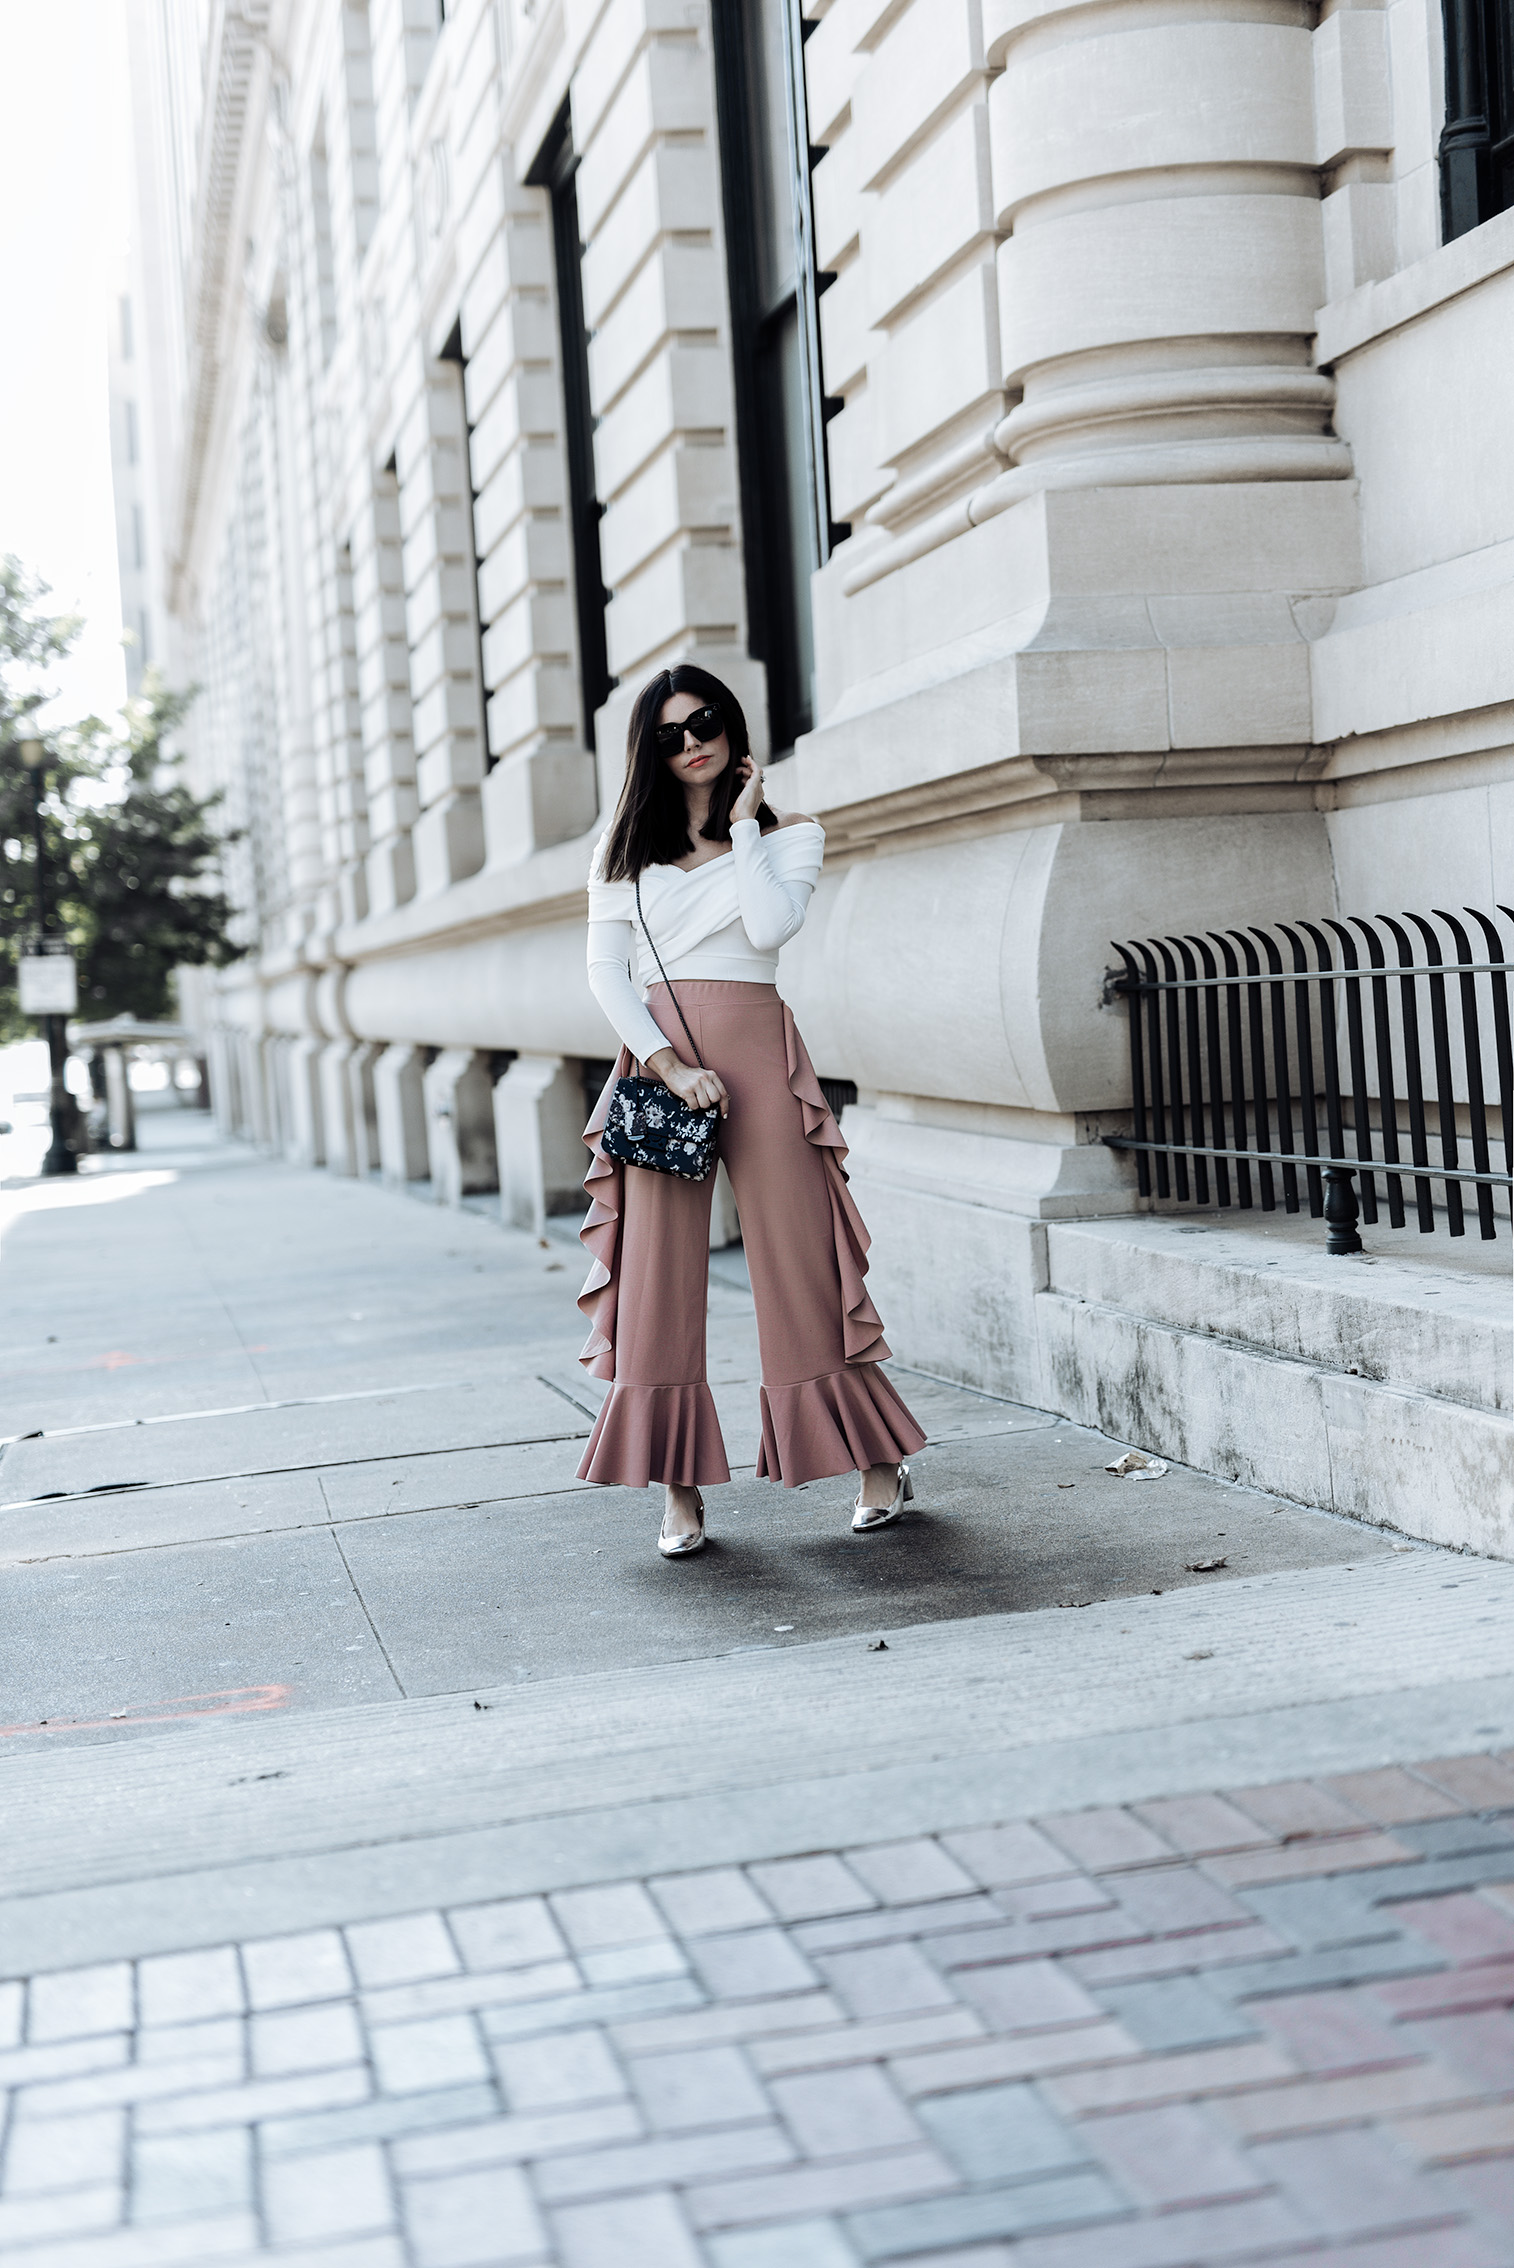 Ruffle Pant Trend, click to shop the look | Streetstyle blog, blog, Edie Ruffle Side Pant | {C/O} Waldorf Floral Print Party Bag | Off the Shoulder Crop Top | Silver pumps (Via Zara, Similar here)